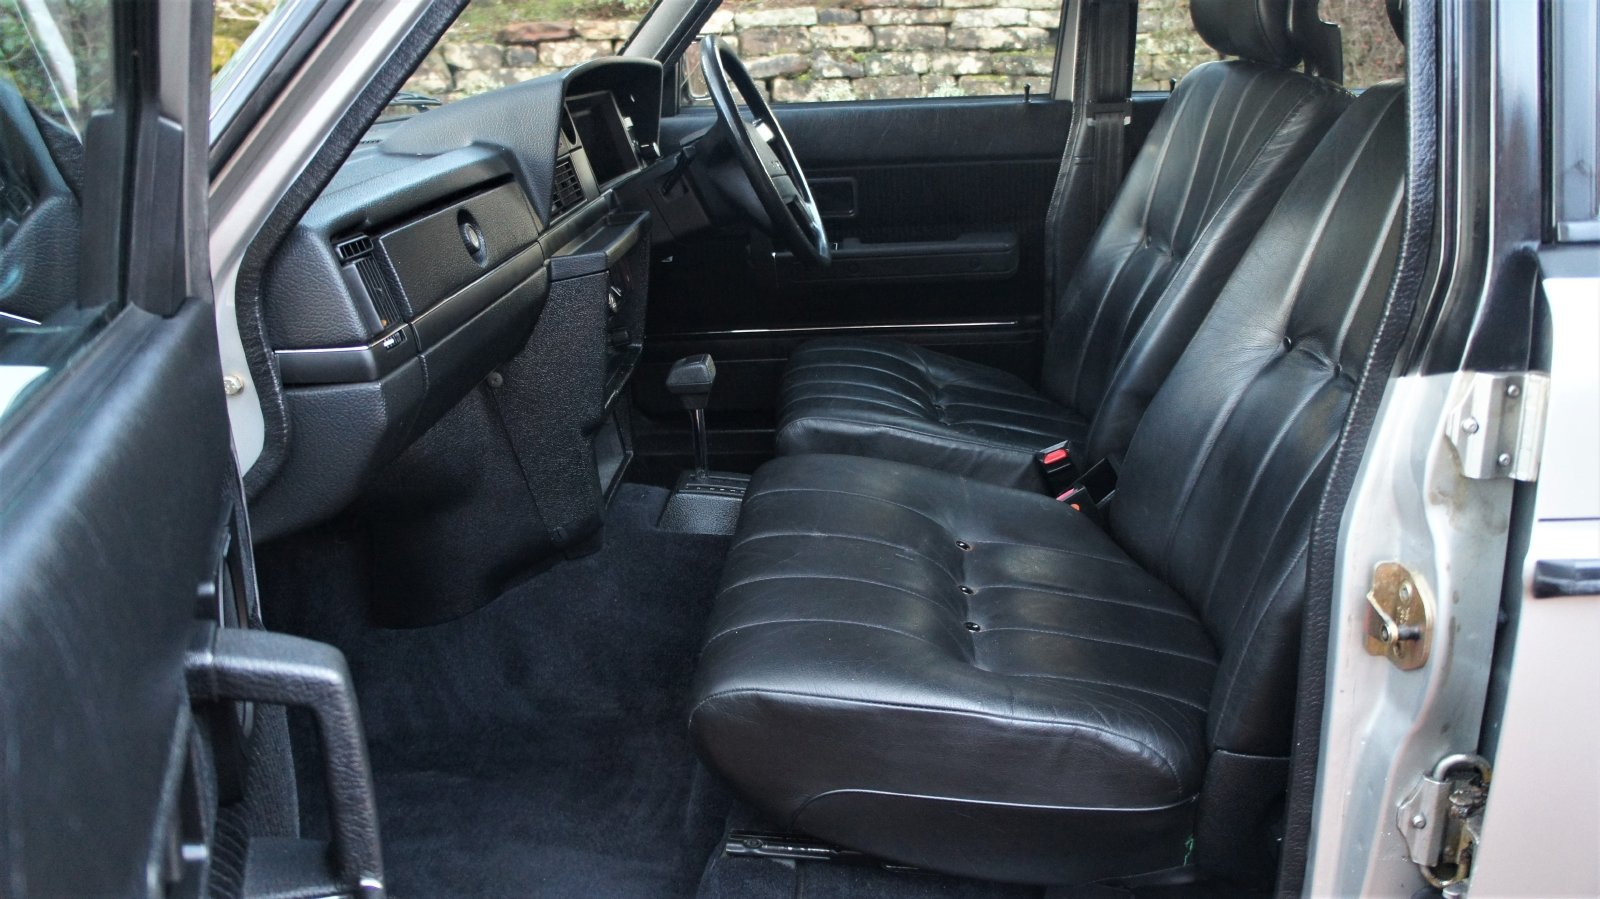 1989 Volvo 240 glt 49000 miles one owner from new For Sale (picture 6 of 6)